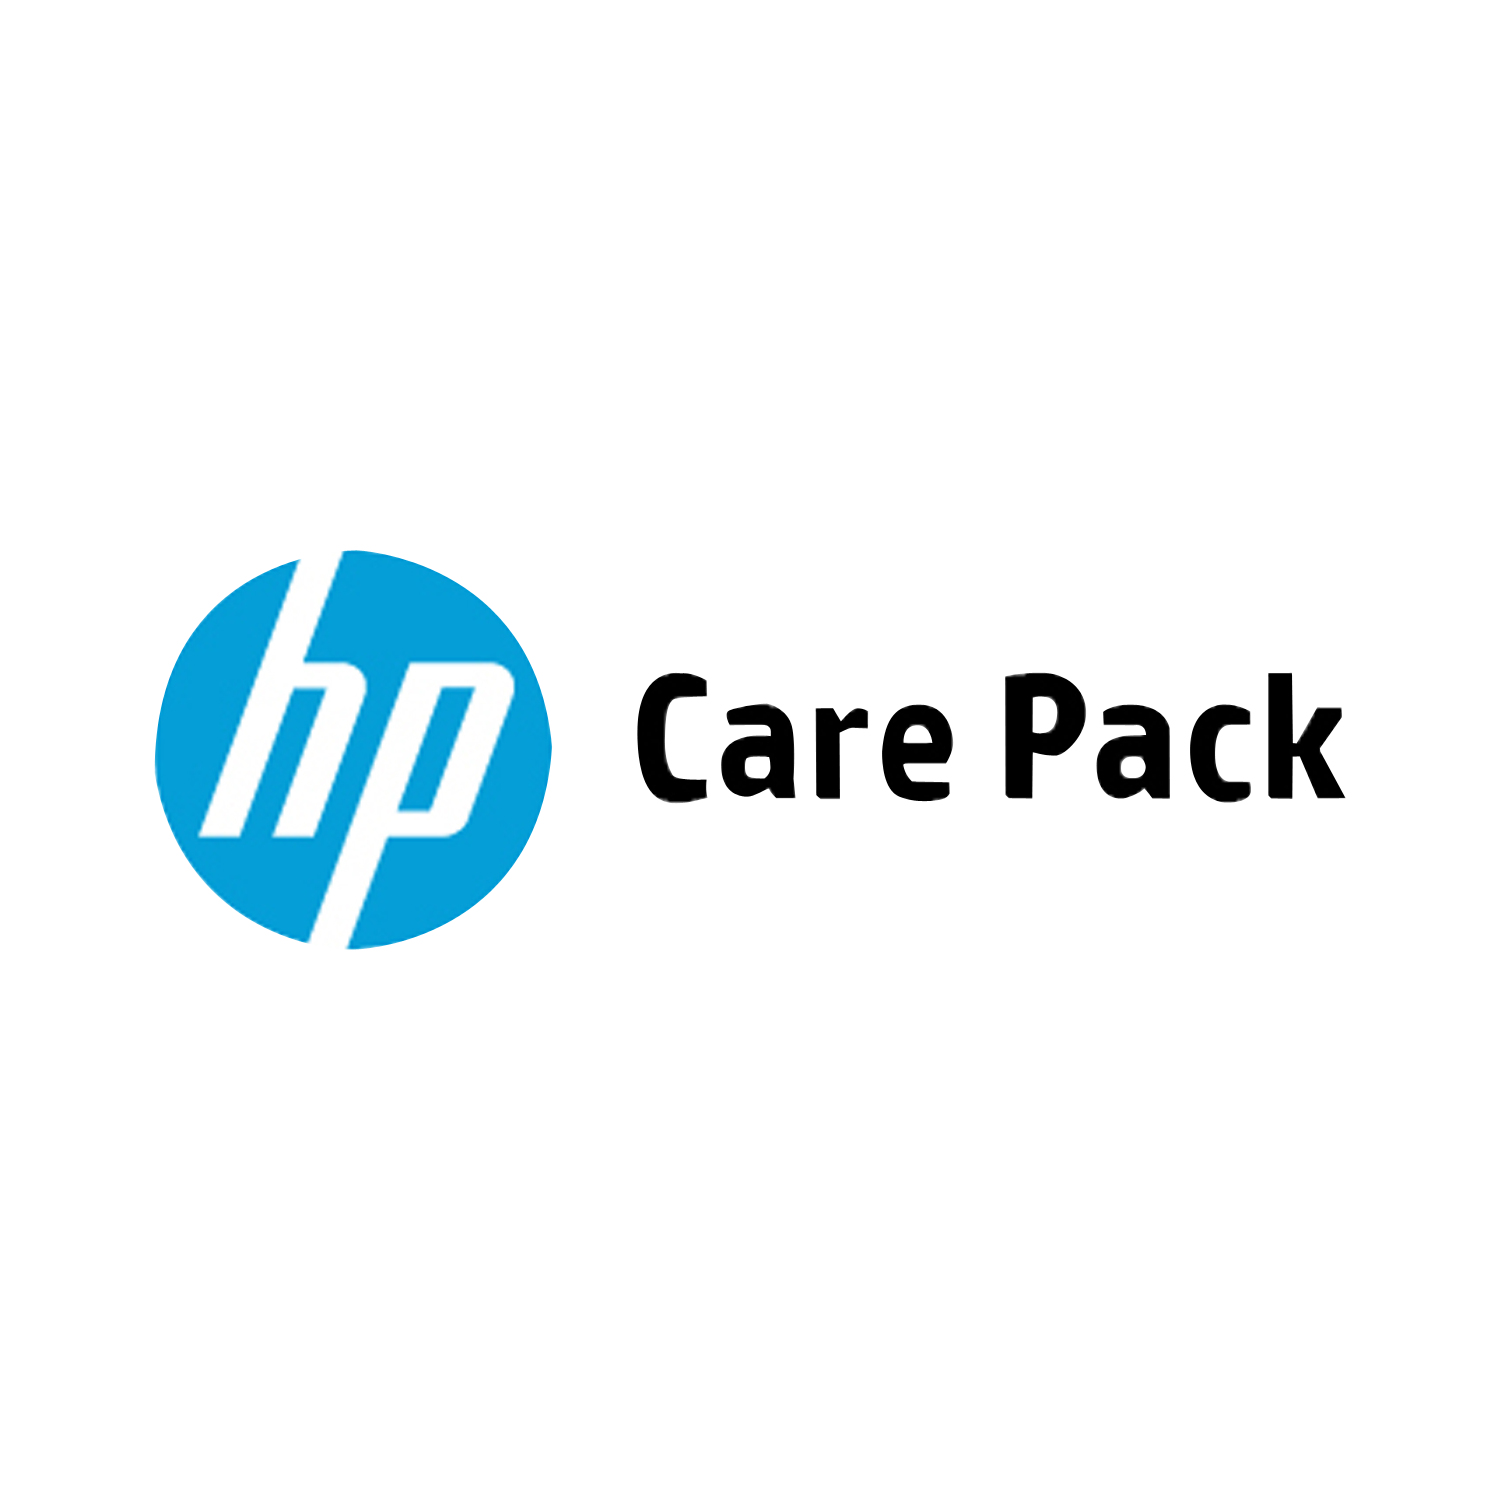 HP 5y NextBusDay Onsite LE DT Only HW Supp